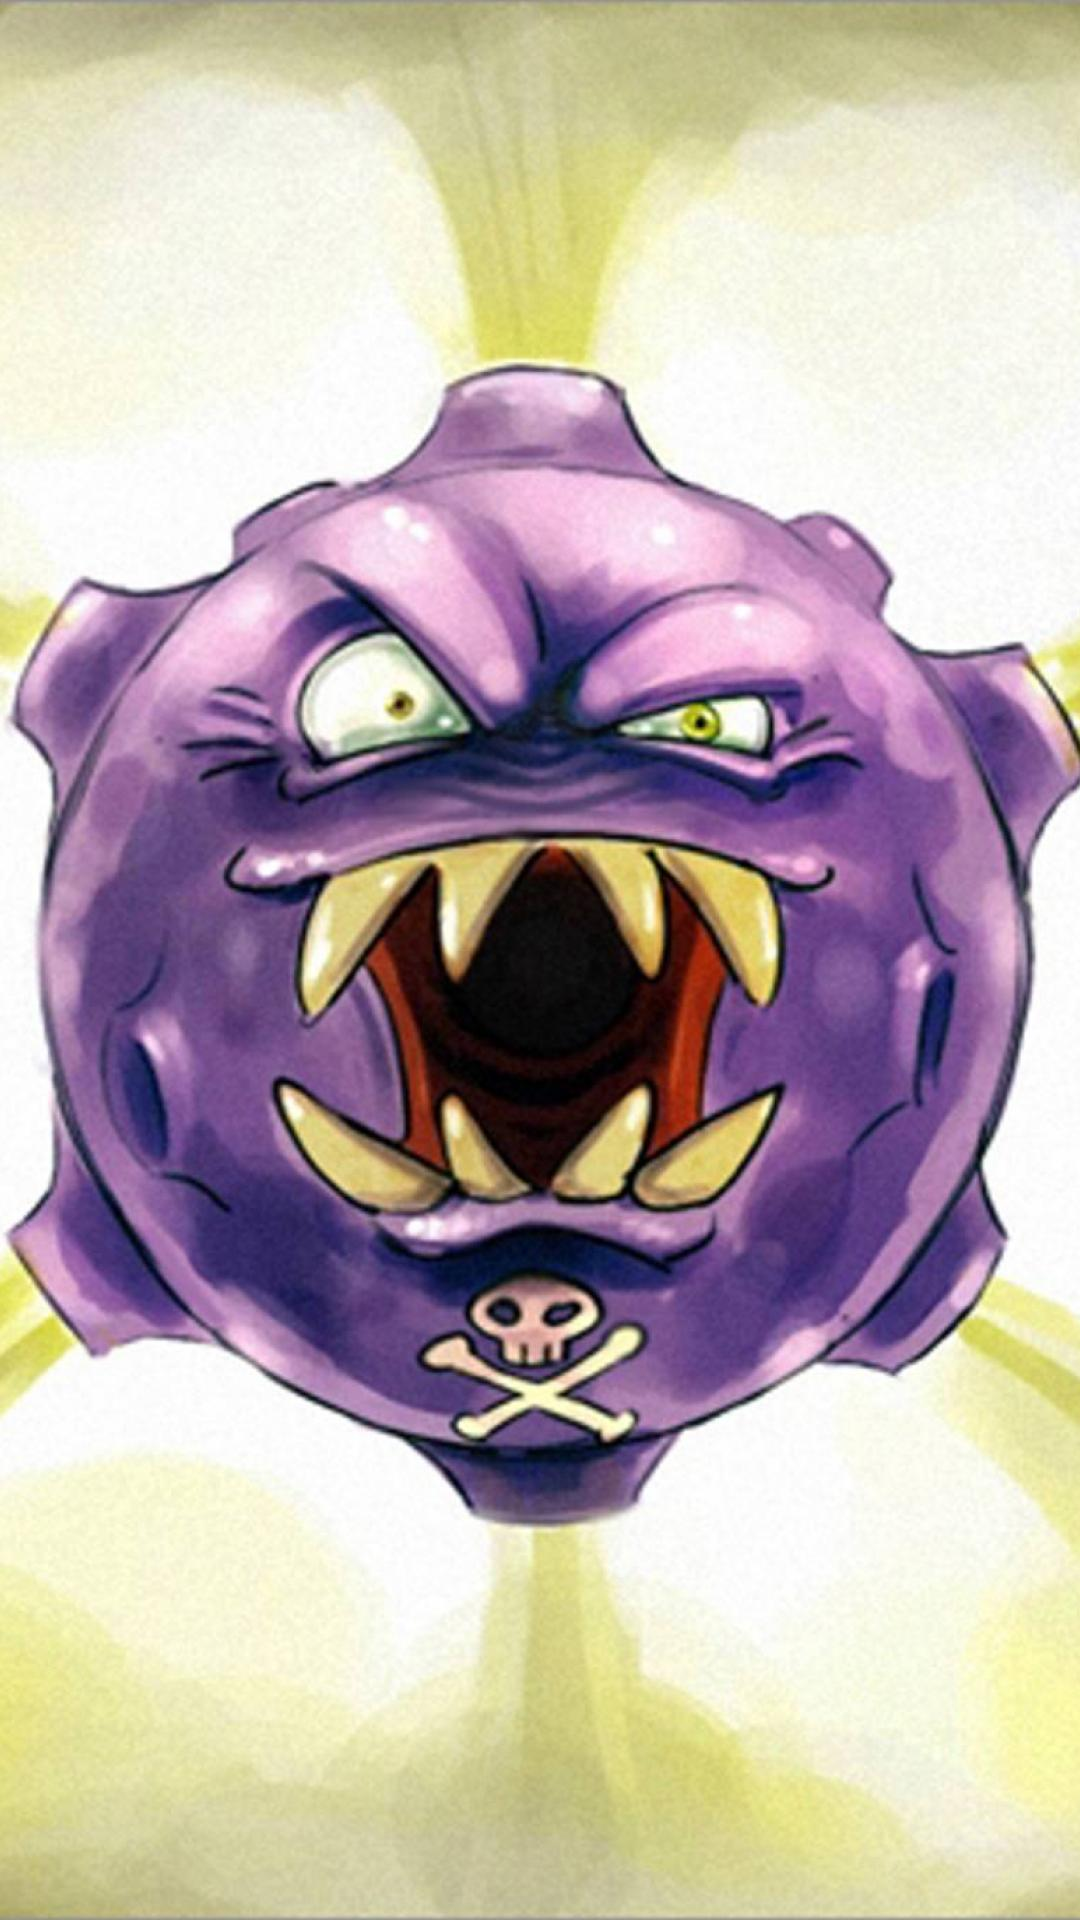 ScreenHeaven: Koffing Pokemon desktop and mobile background